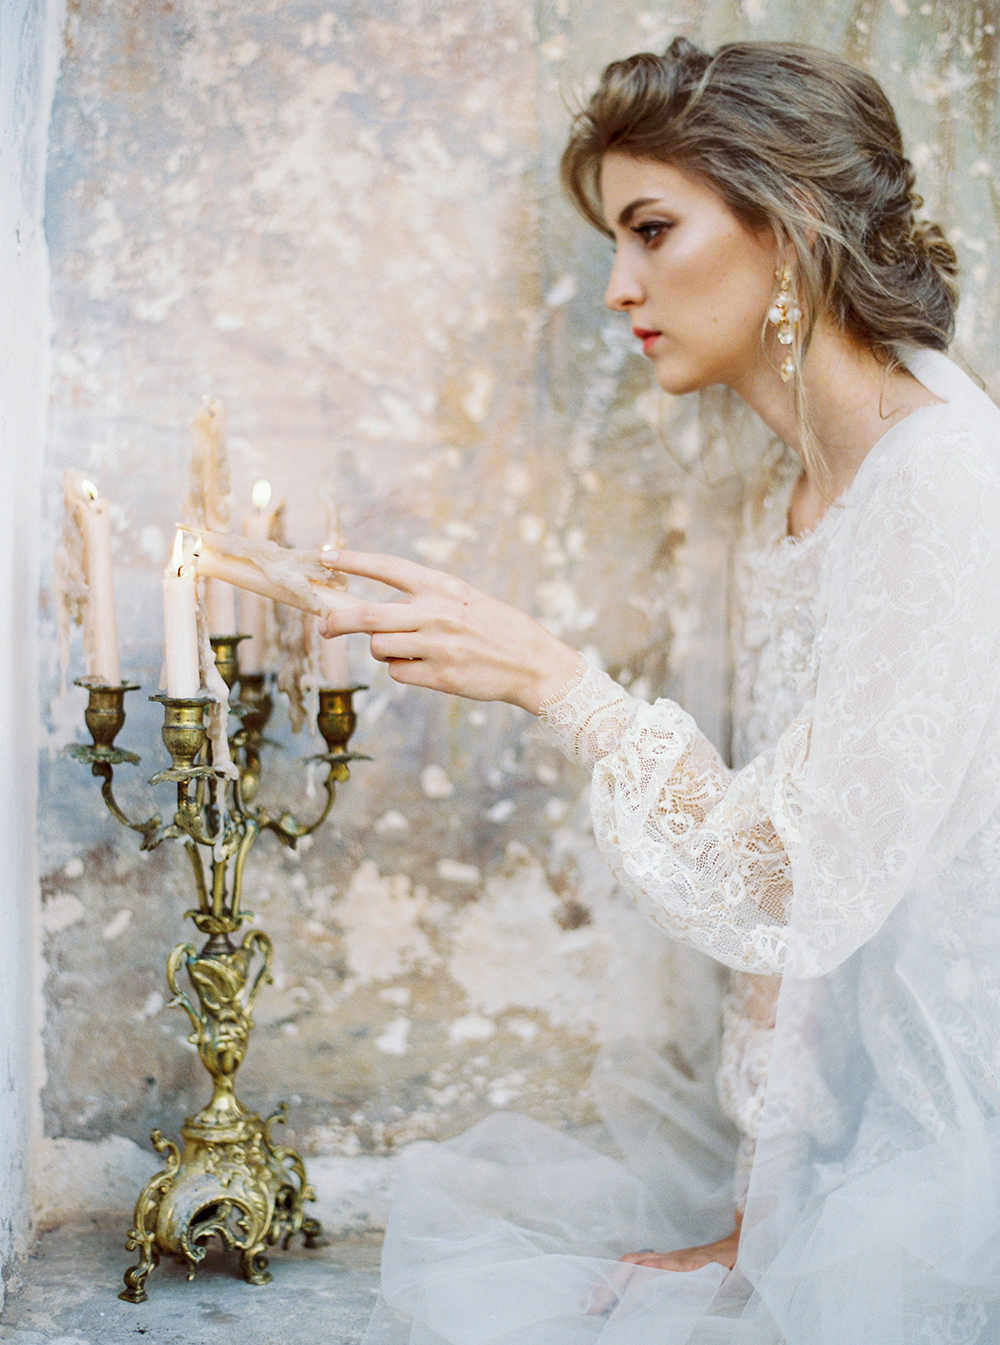 estate wedding ideas - photo by Zhenya Savina http://ruffledblog.com/russian-swan-princess-bridal-inspiration